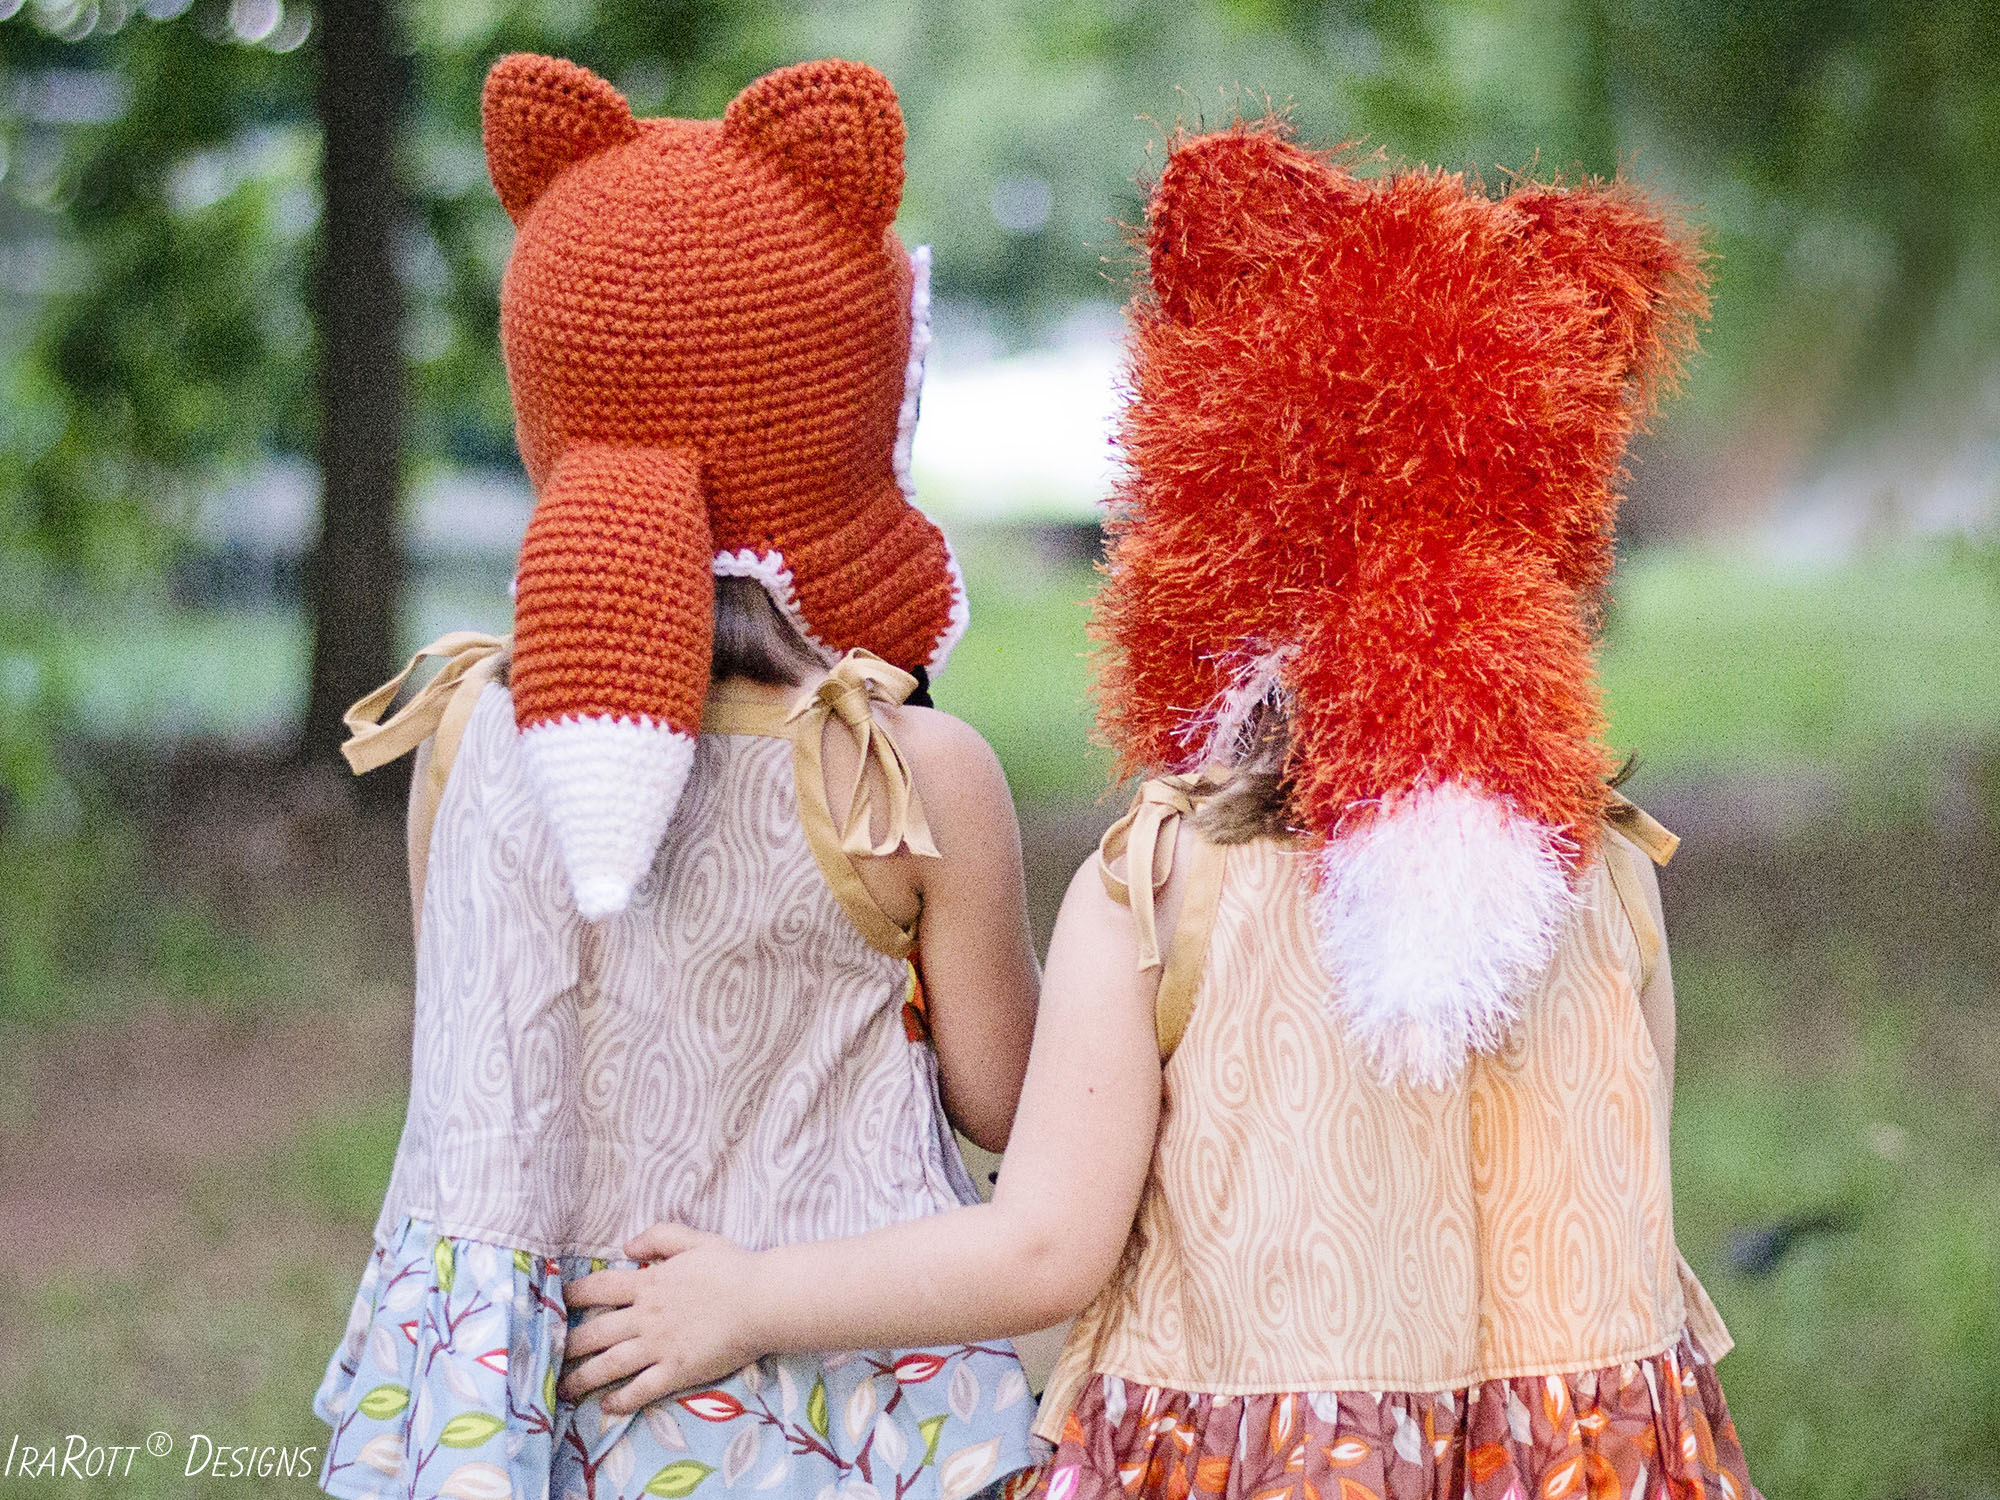 FREE crochet pattern for making an adorable fox animal tail for hat or pants